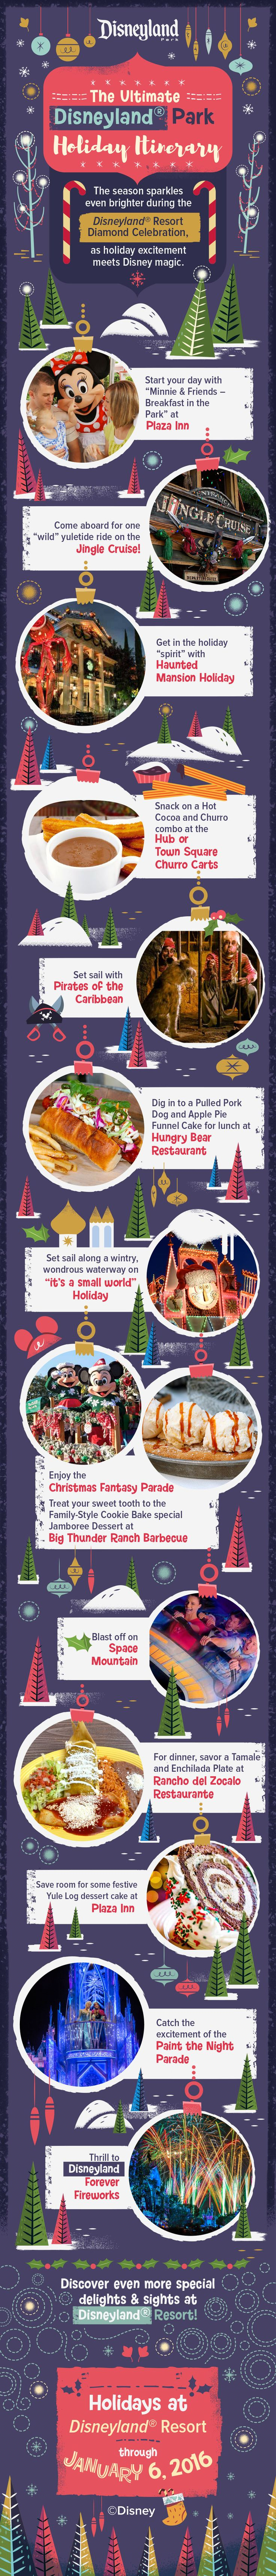 Make the season bright with this dazzling holiday itinerary at Disneyland Park!